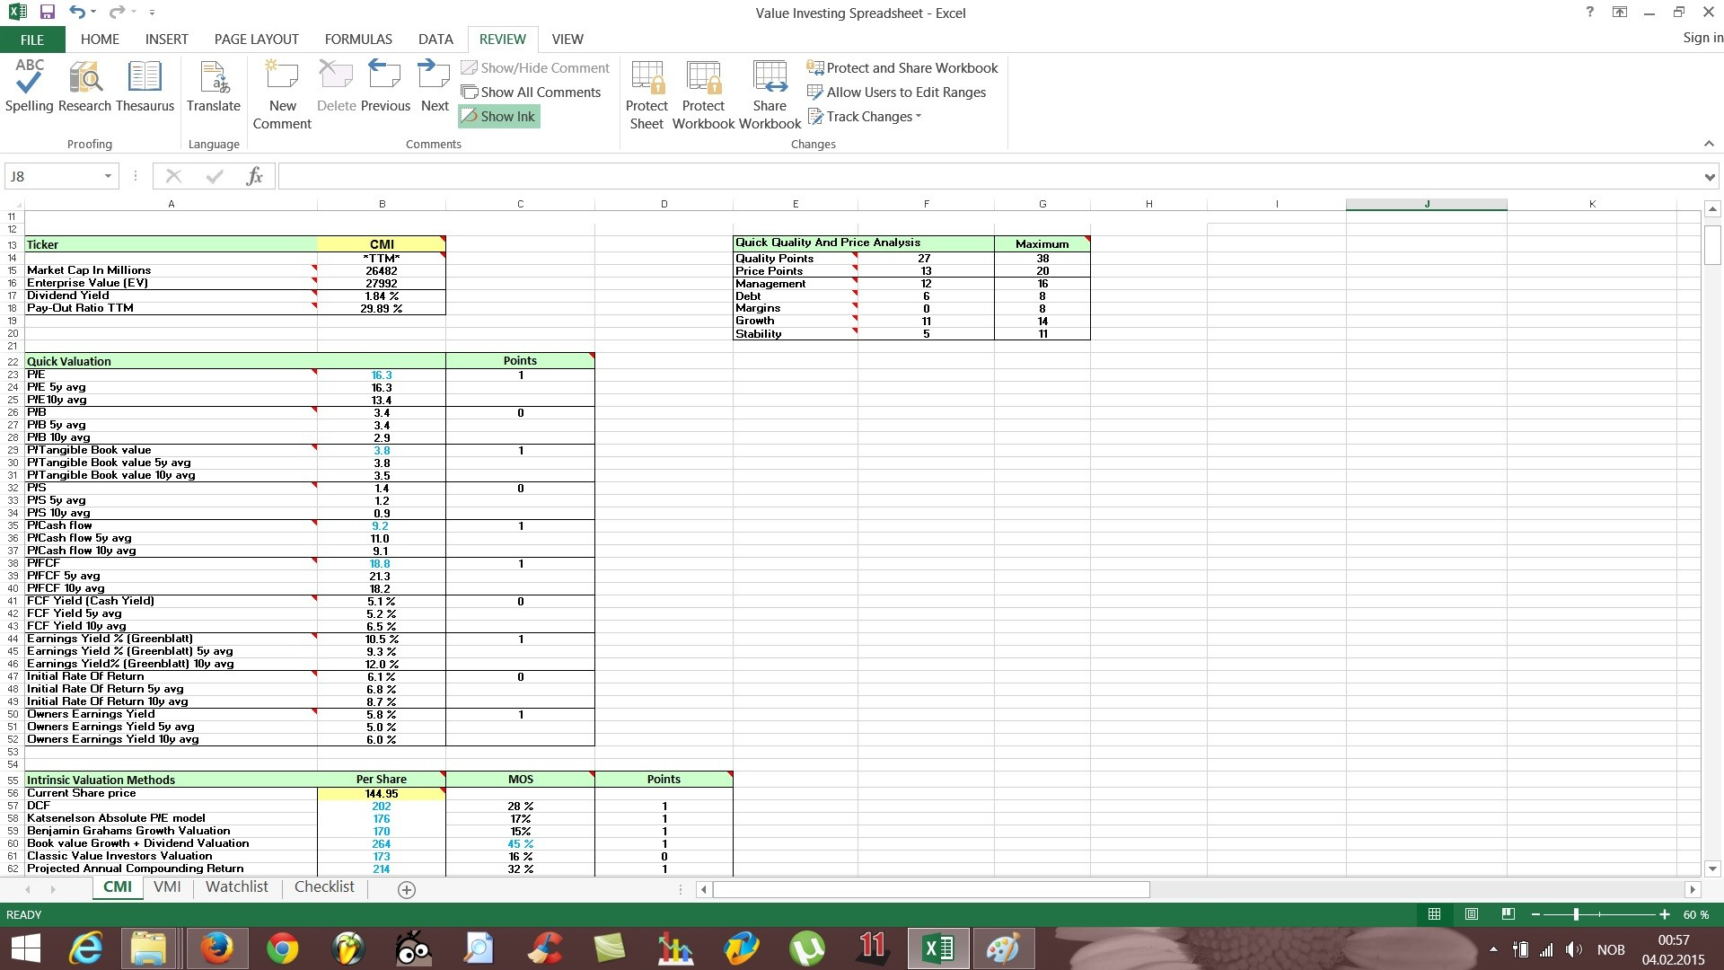 Stock Analysis Spreadsheet With Portfolio Valuation Report Sample Fresh Stock Analysis Spreadsheet